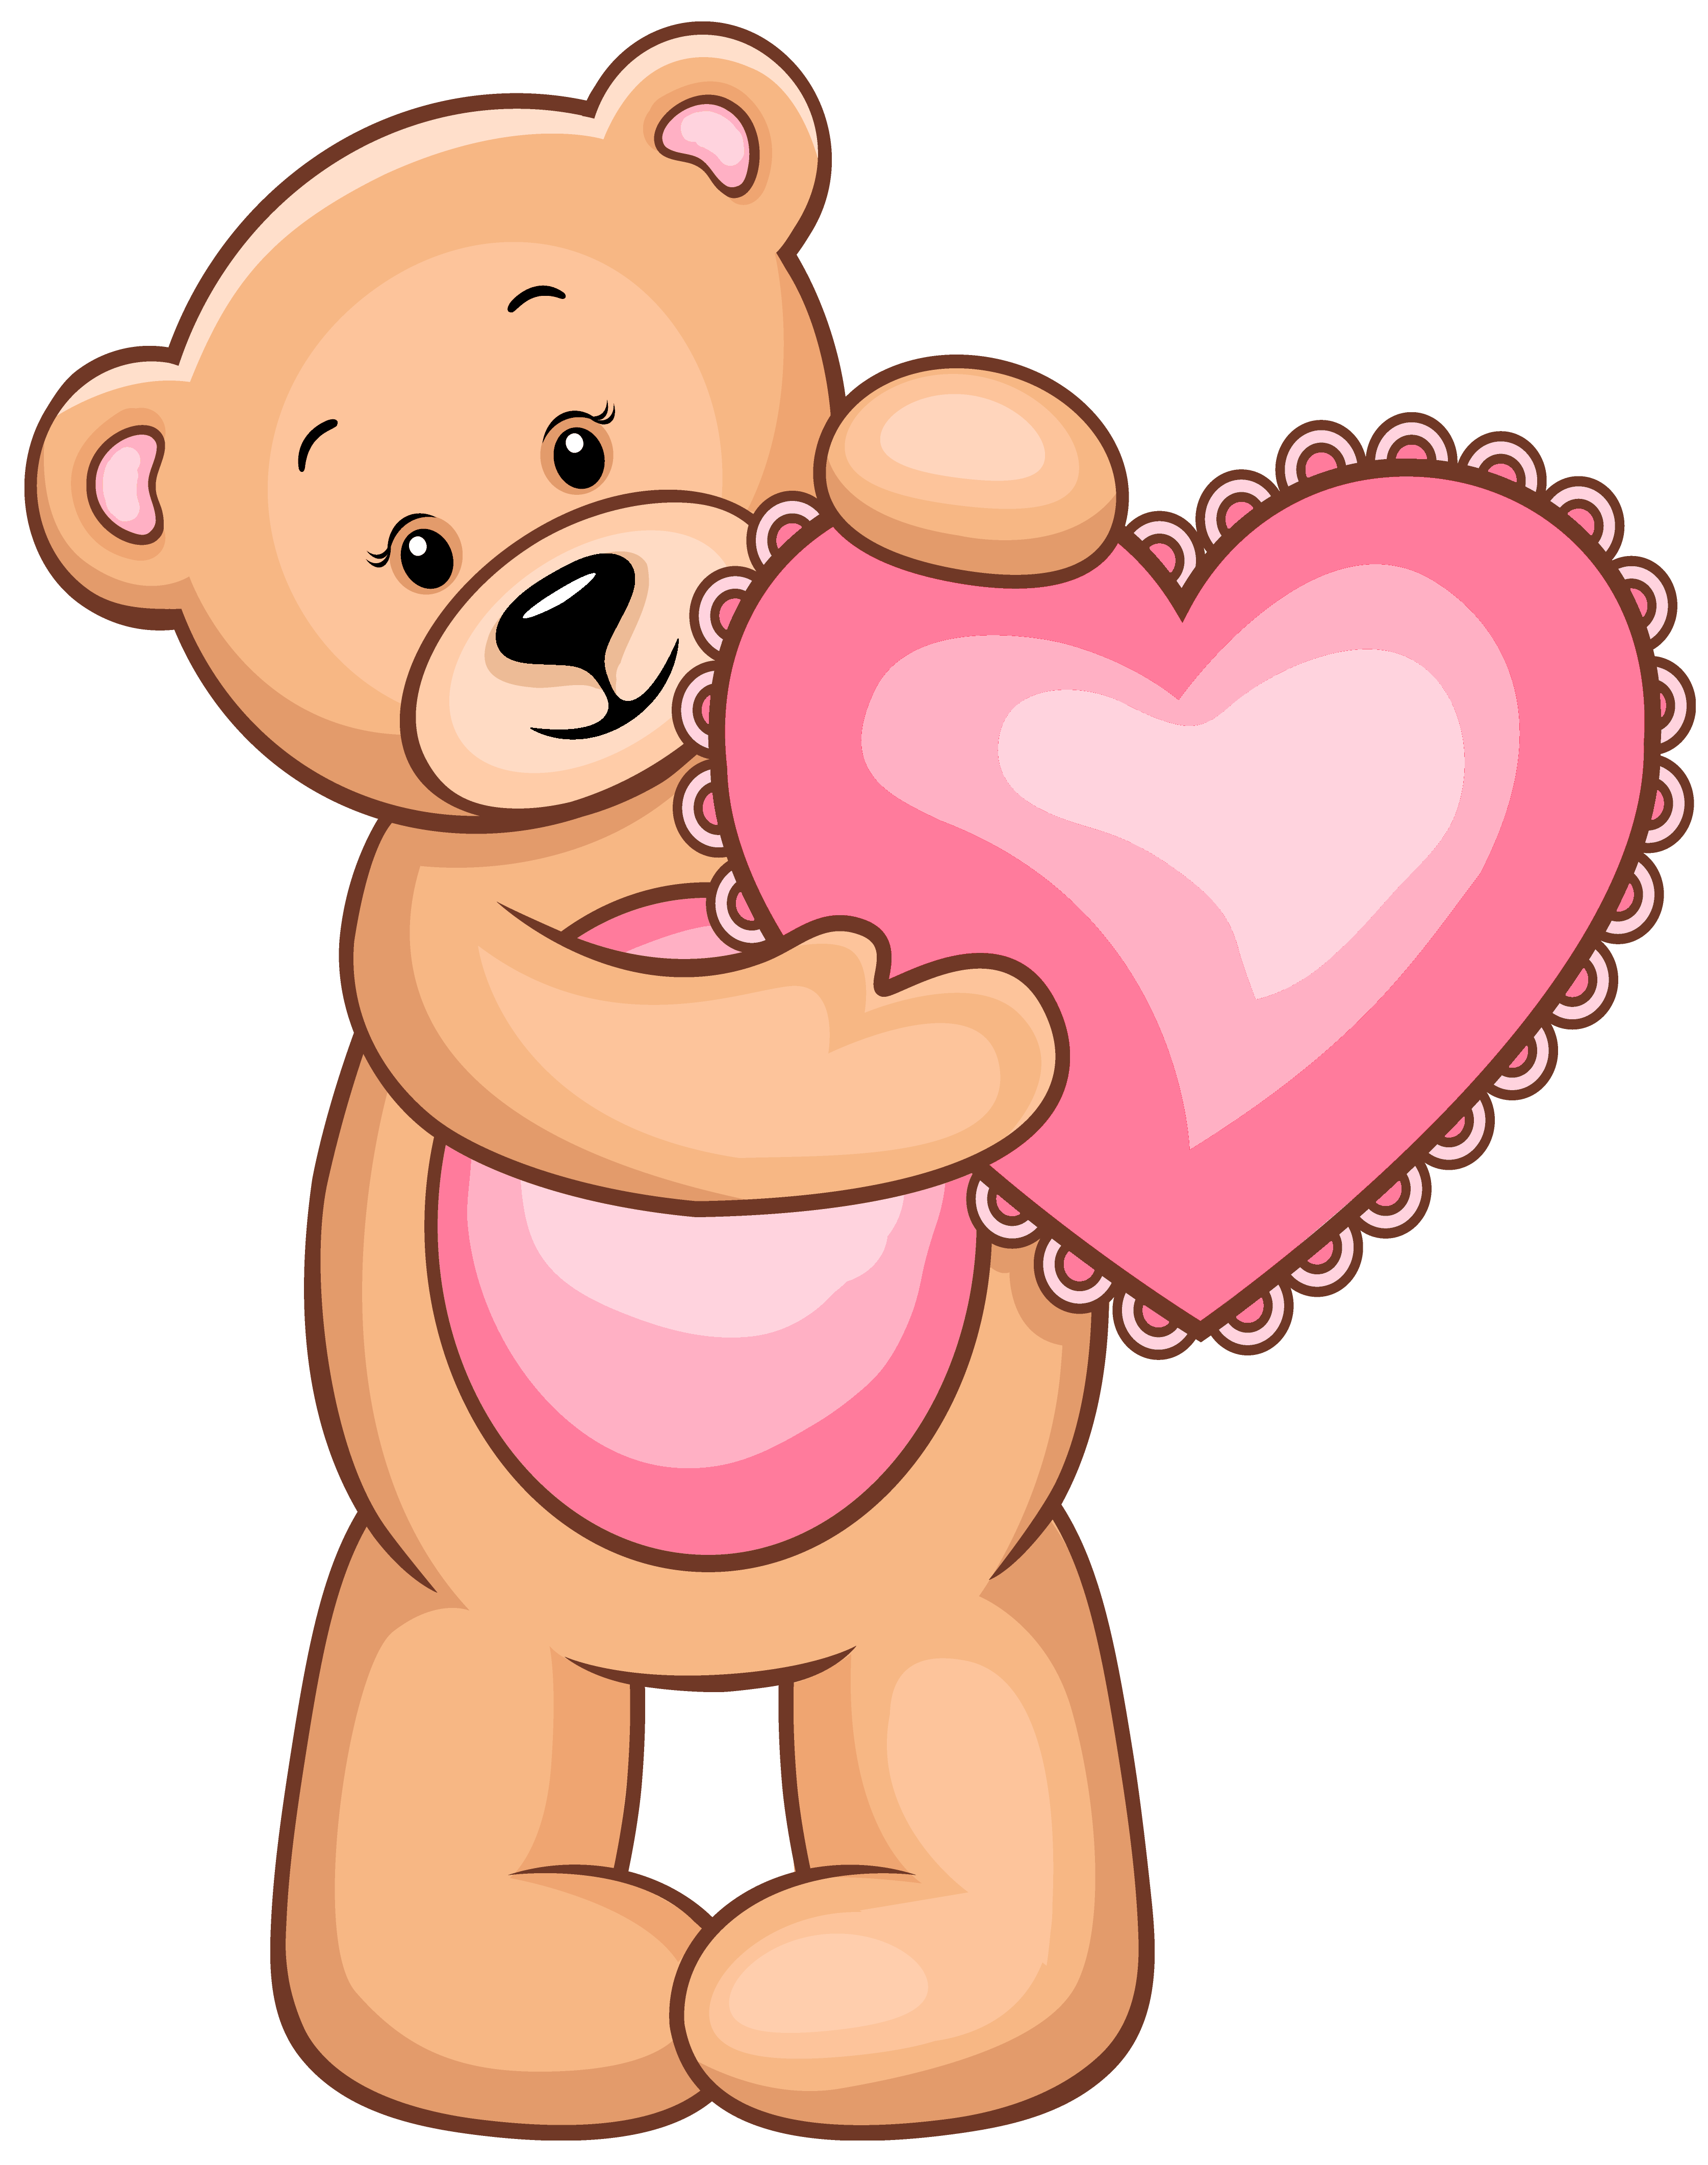 3349x4244 Teddy Bear Outline Clipart Cliparts And Others Art